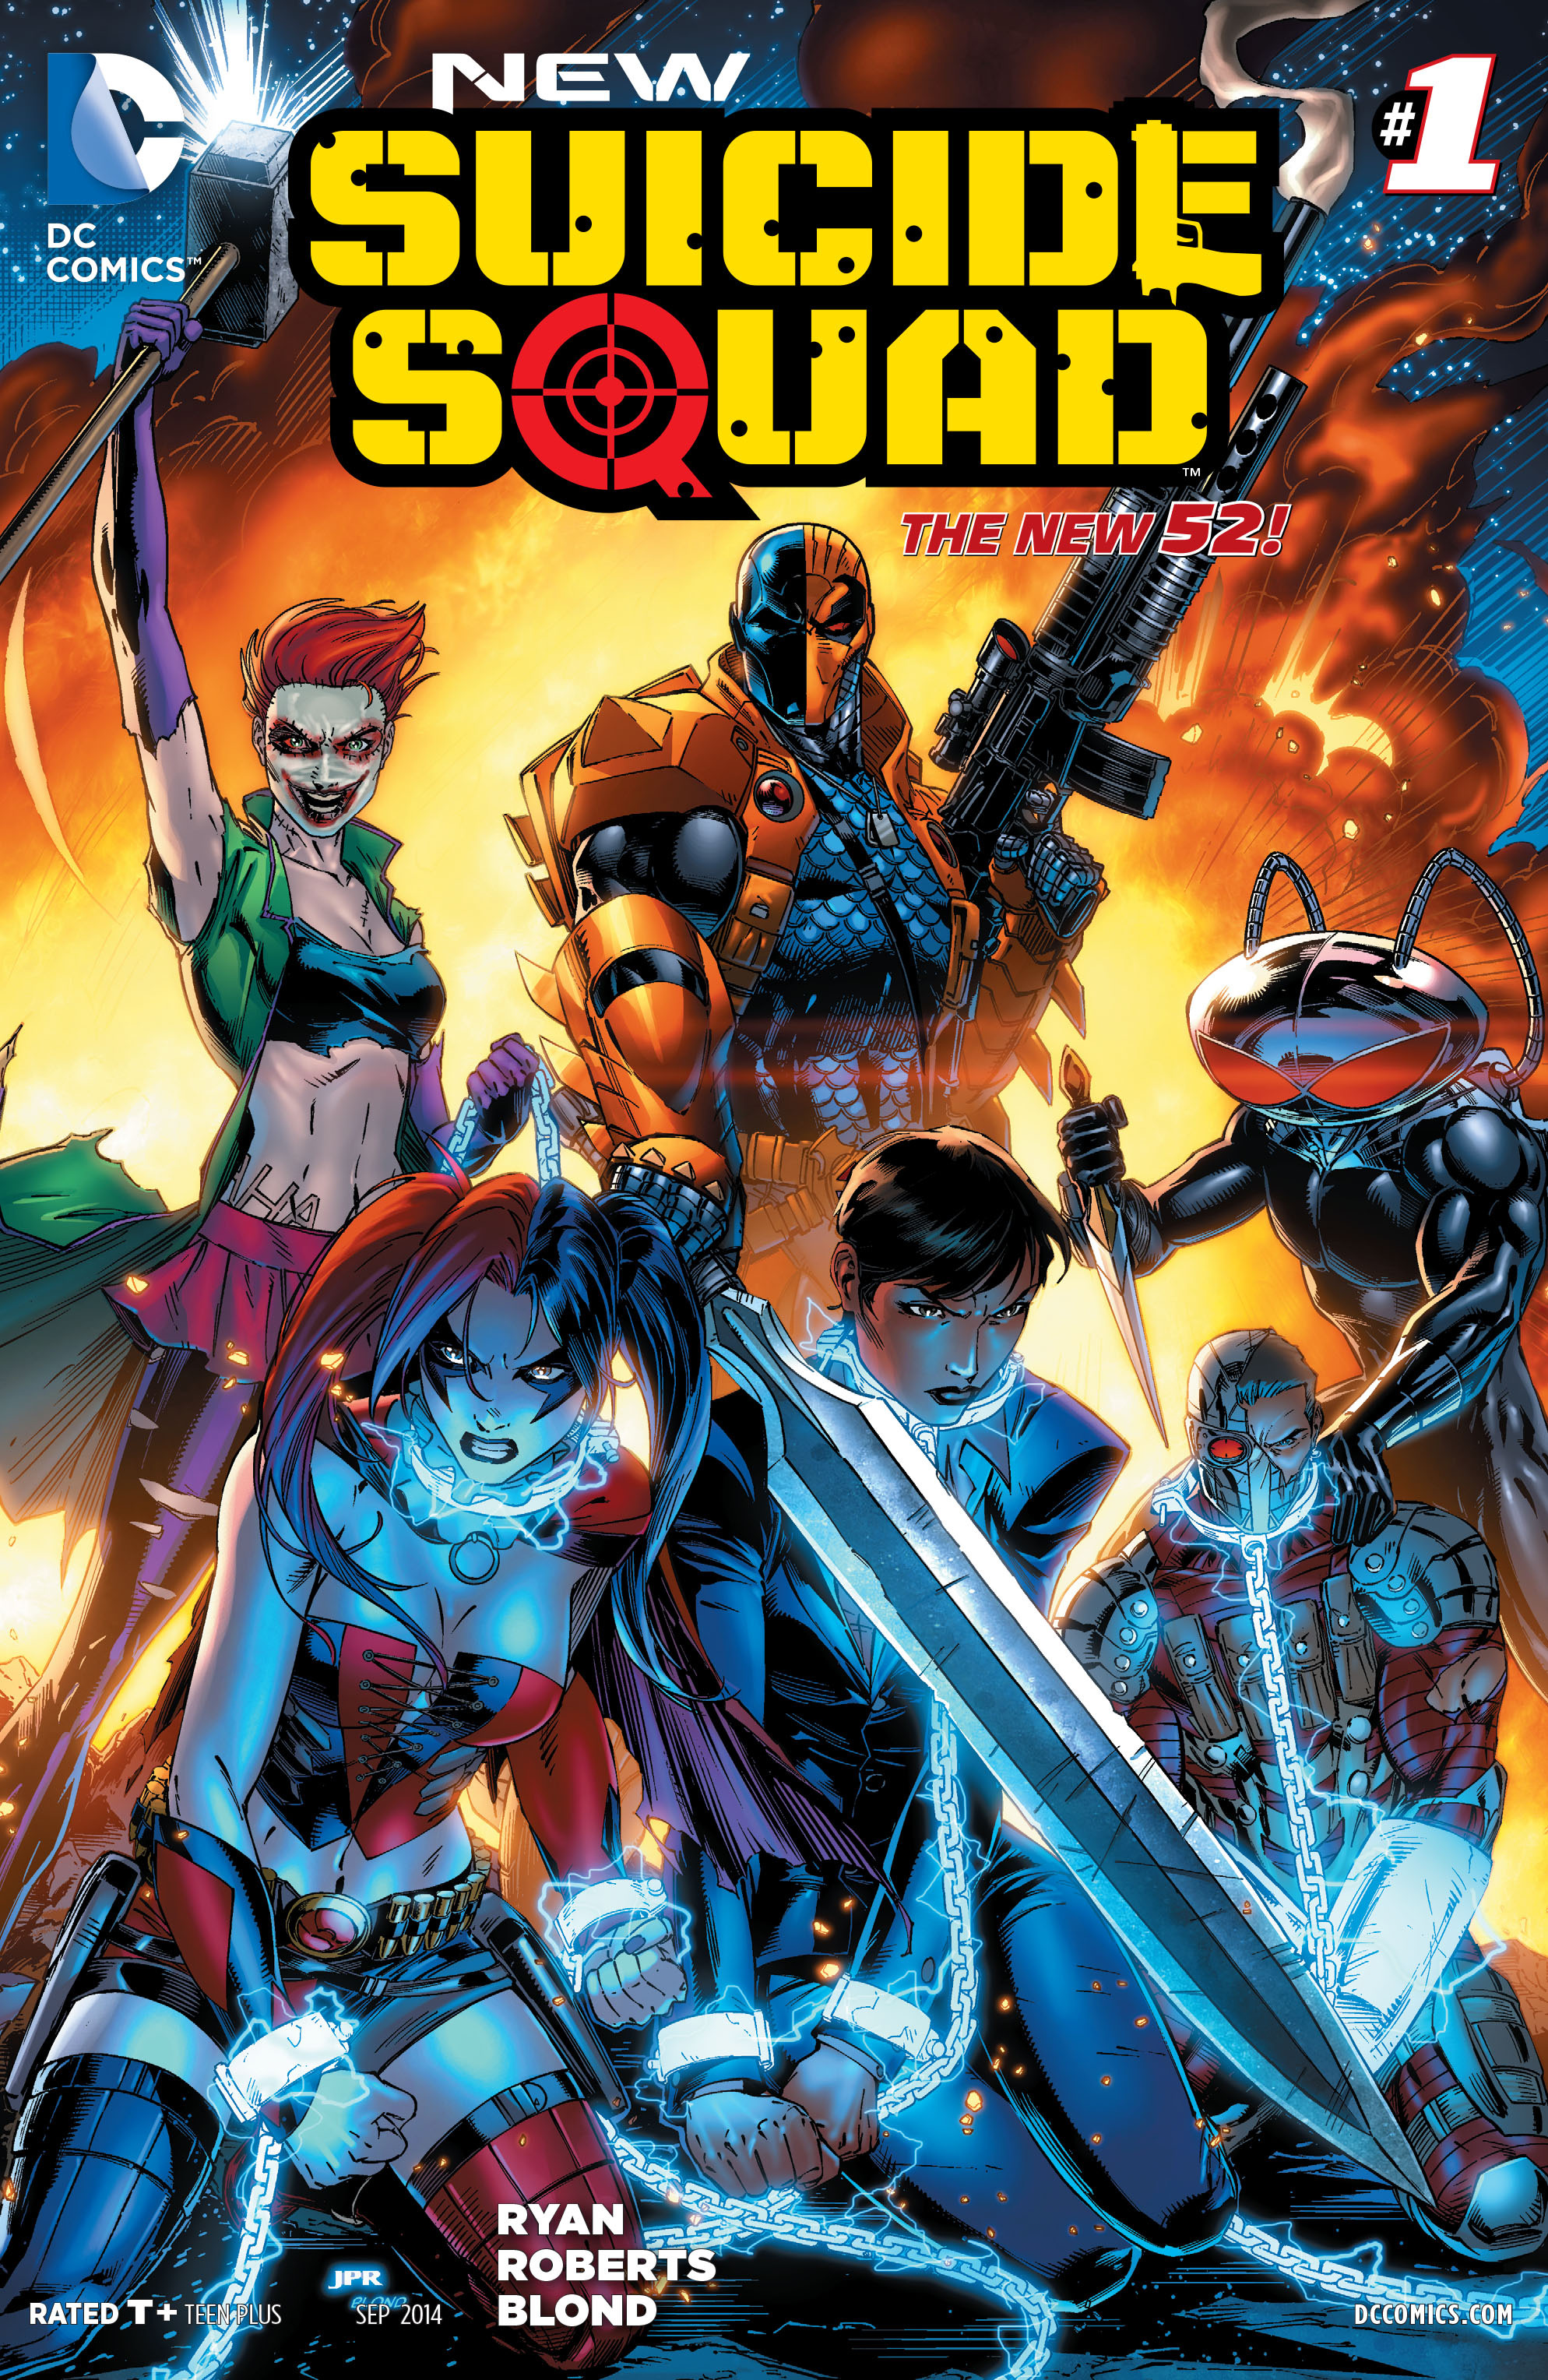 http://vignette1.wikia.nocookie.net/marvel_dc/images/8/82/New_Suicide_Squad_Vol_1_1.jpg/revision/latest?cb=20140718203607